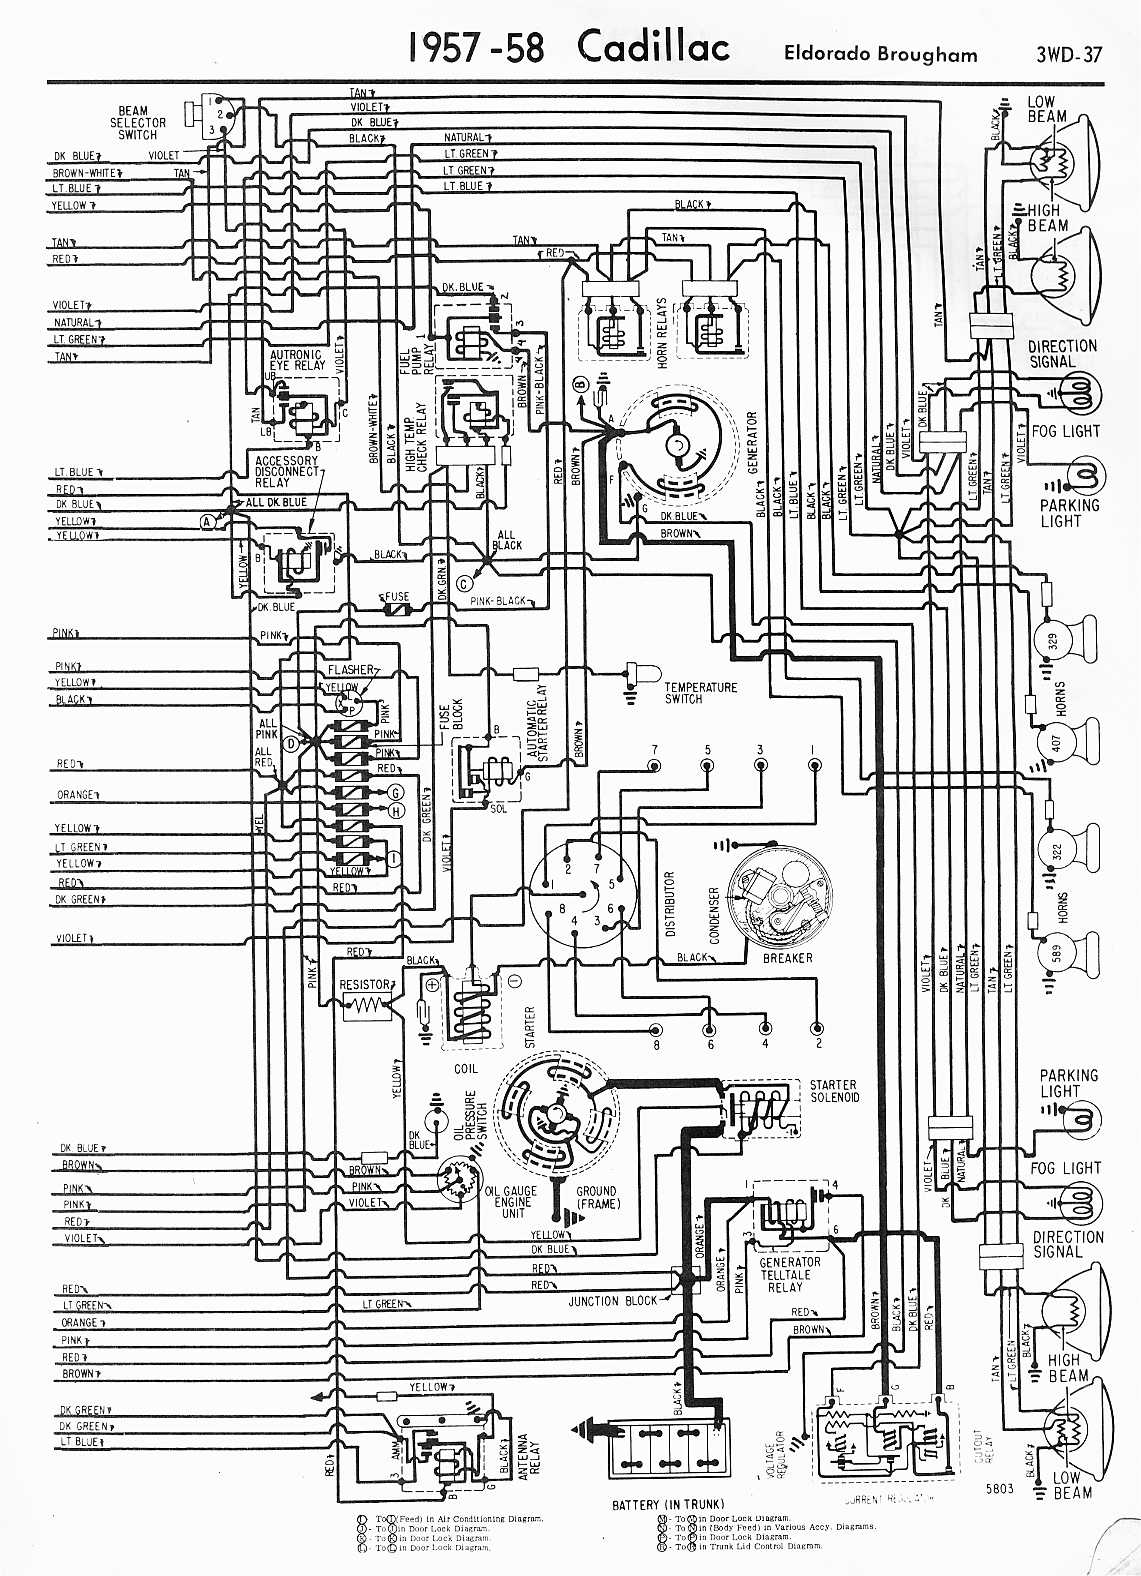 MWireCadi65_3WD 037 cadillac wiring diagrams 1957 1965 El Dorado Movie at readyjetset.co